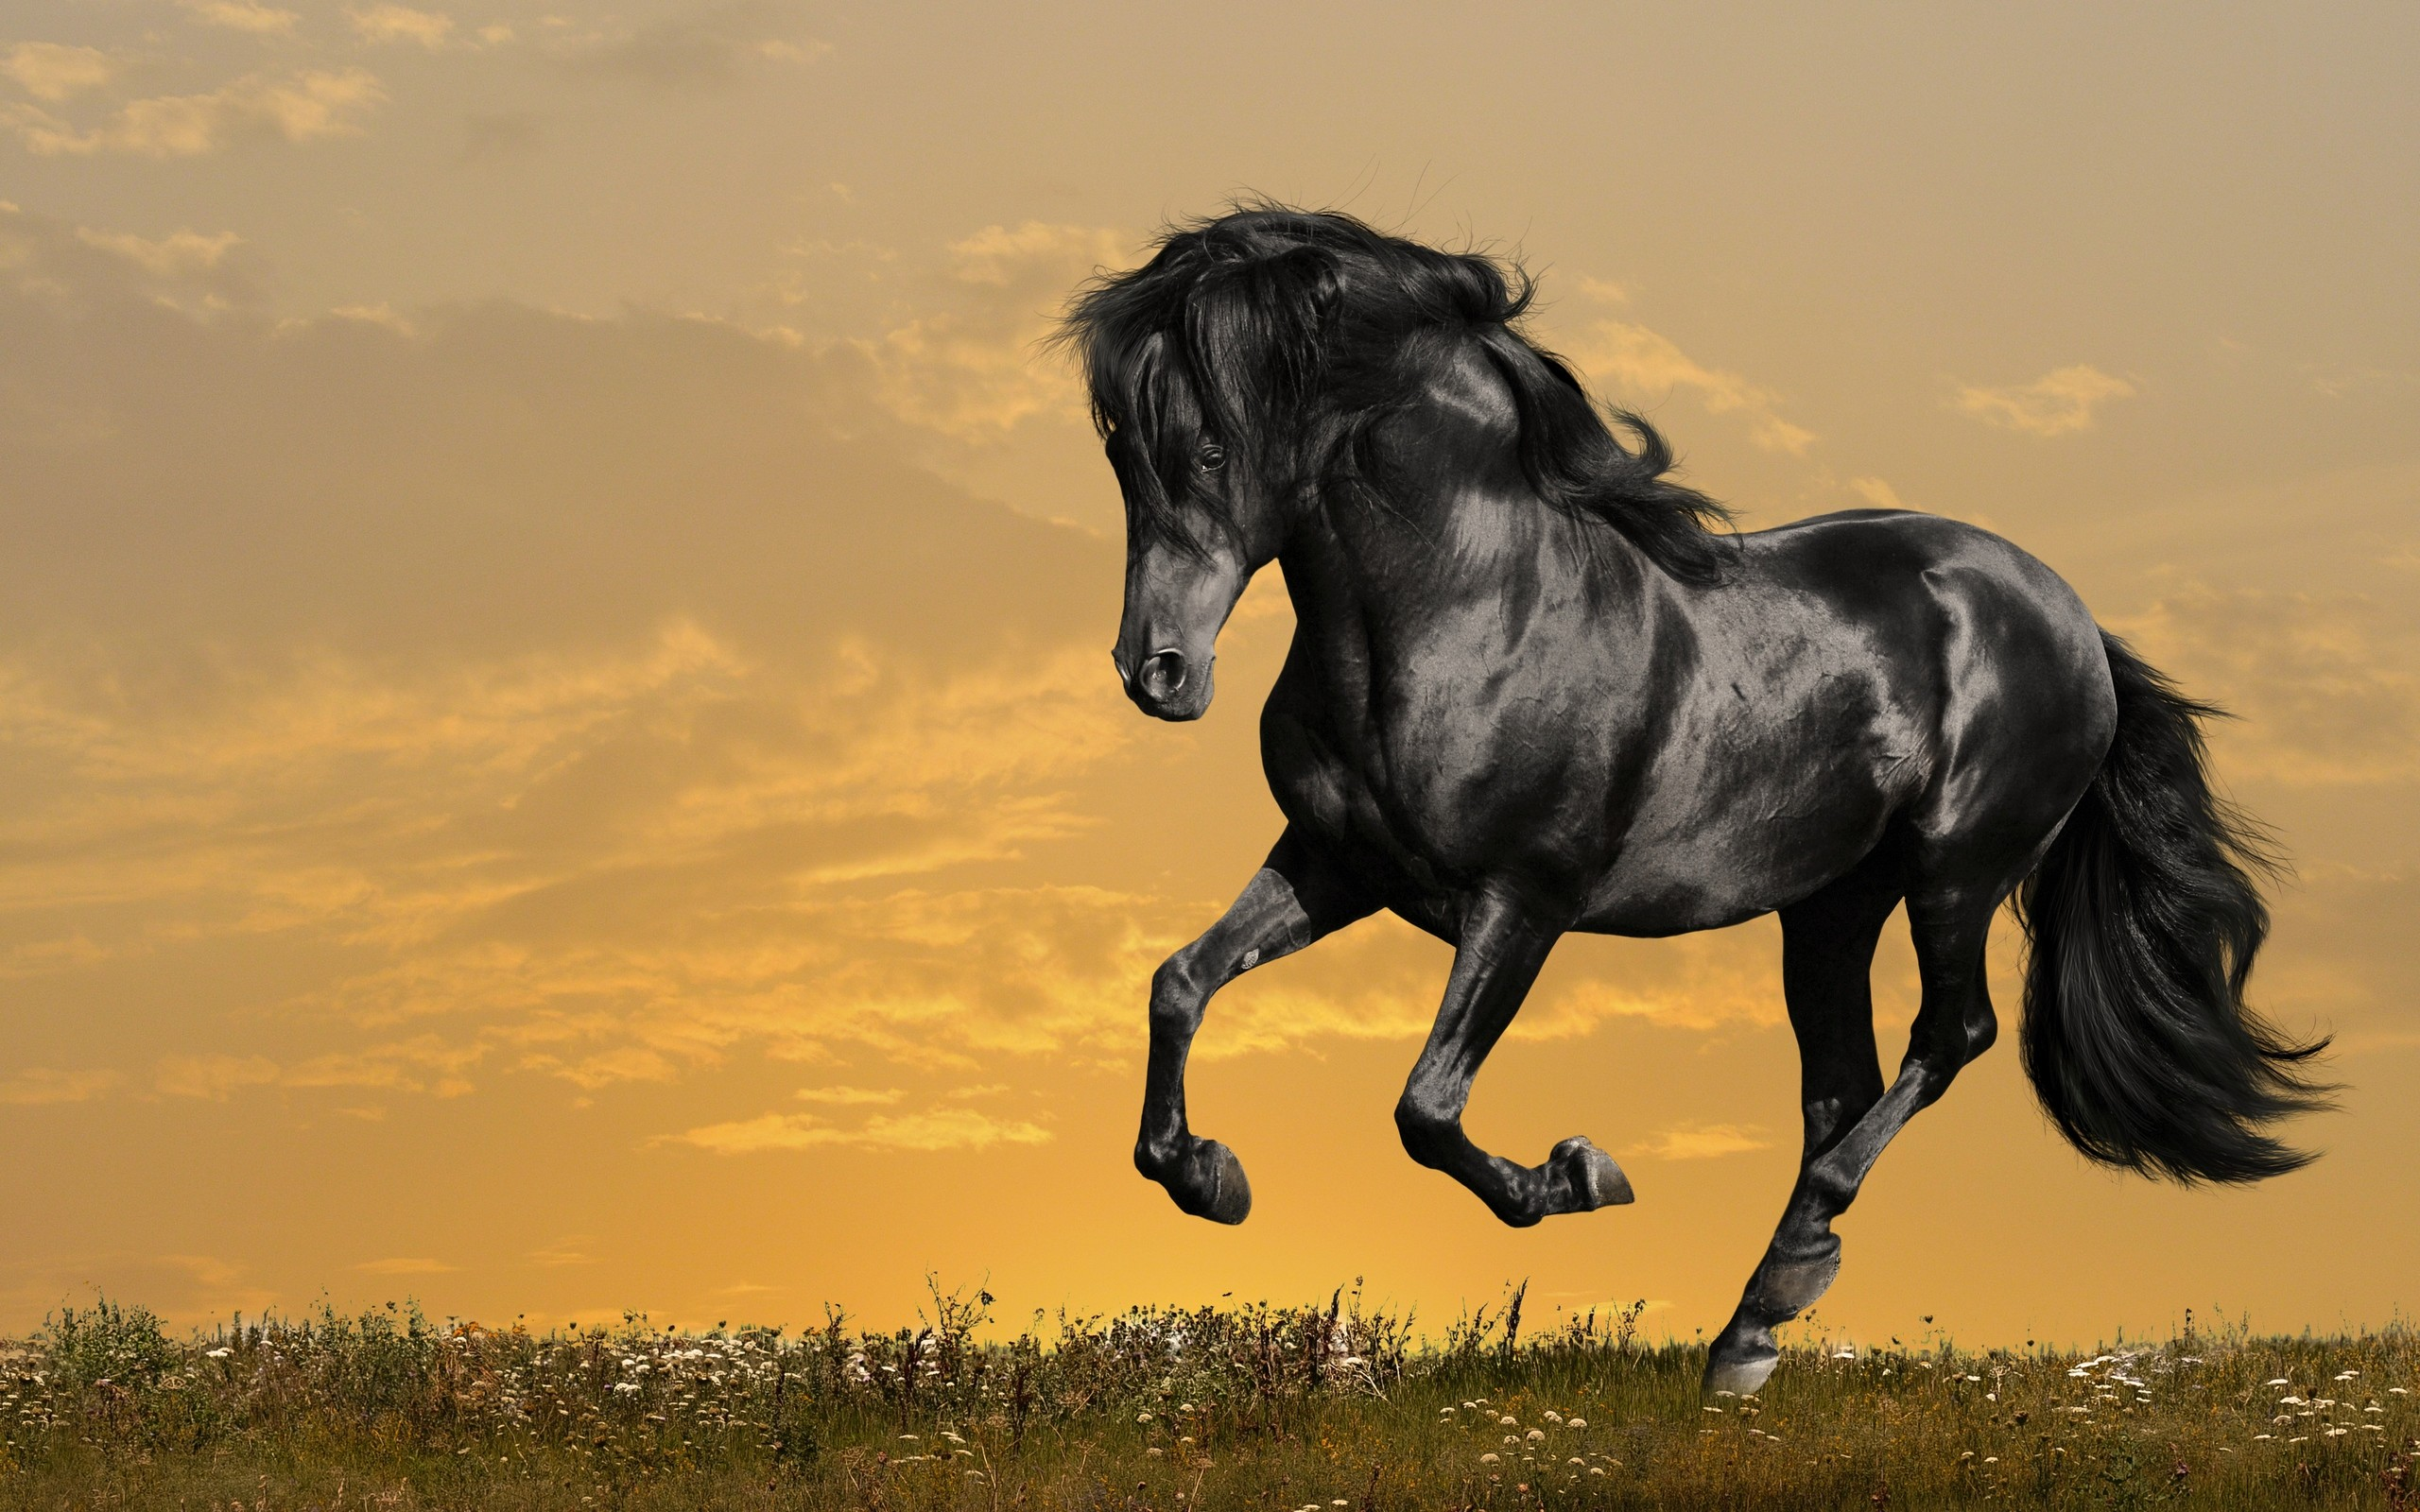 2560x1600 free Black Horse Running wallpaper, resolution : 1920 x tags: Black, Horse